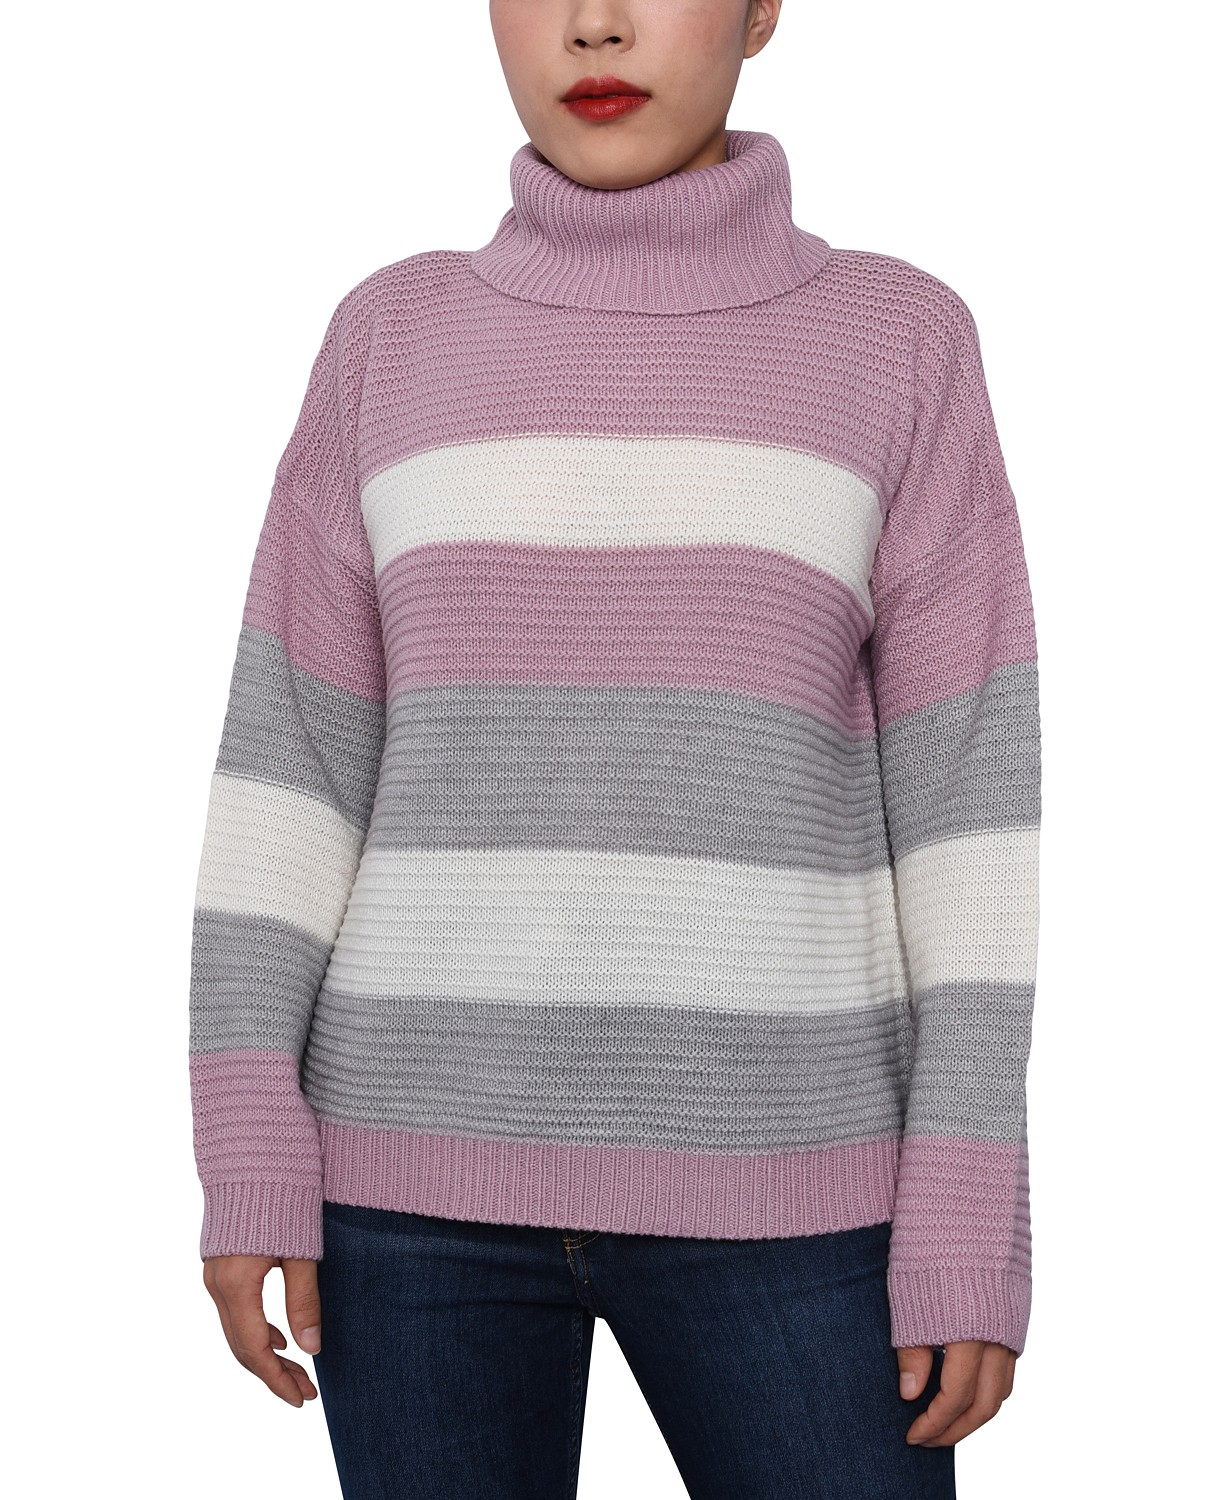 Macy's: Juniors' Striped Cowl-Neck Sweater  $5.36 (80% off)